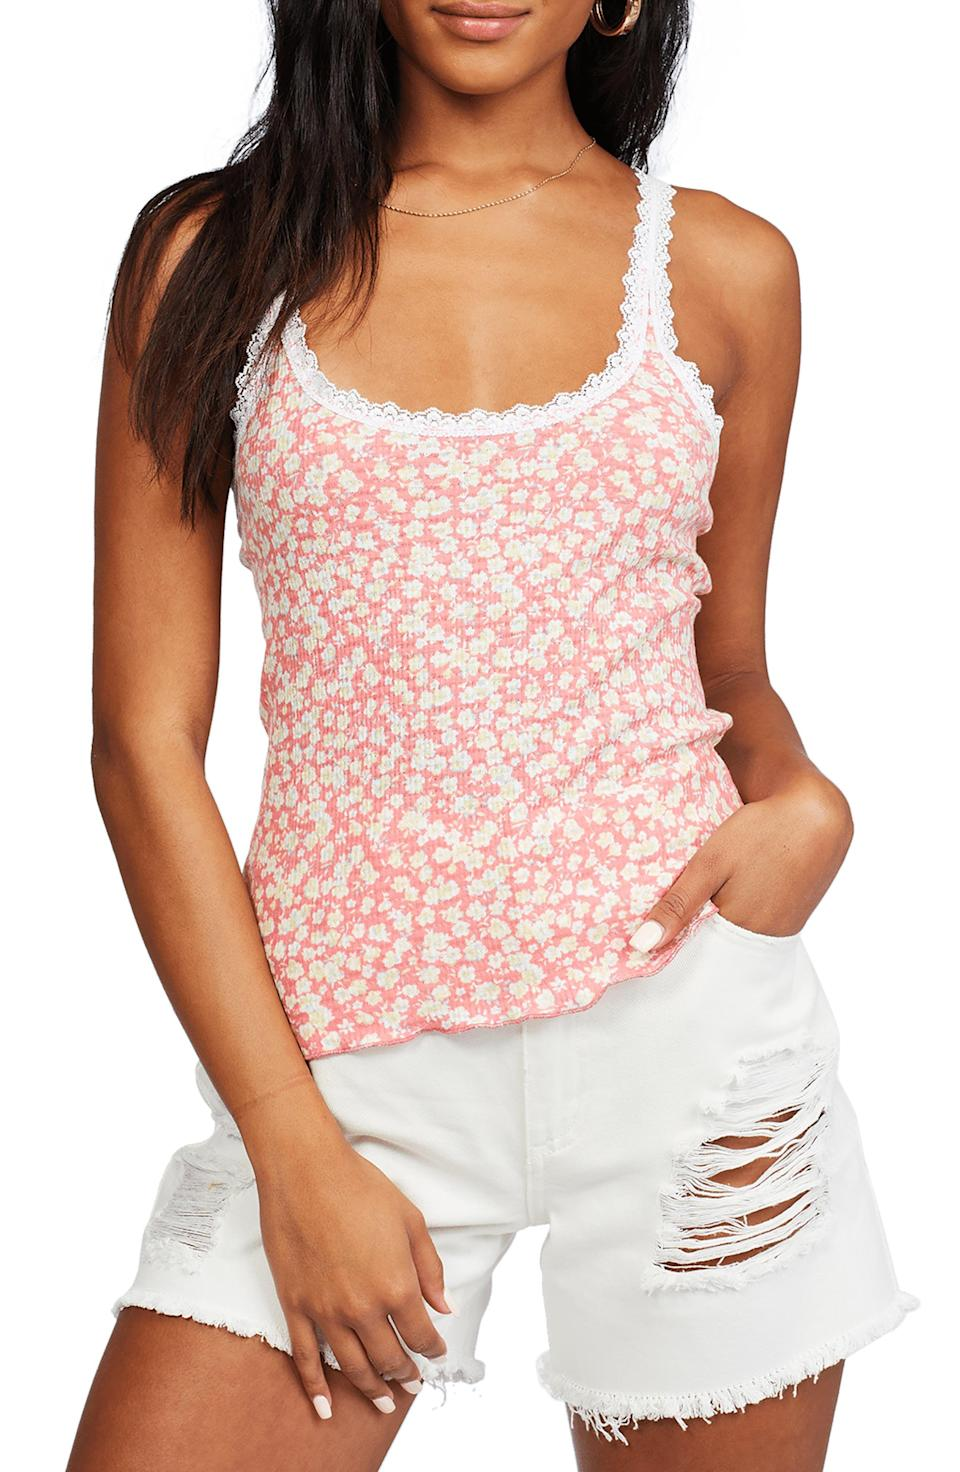 """<p><strong>BILLABONG</strong></p><p>nordstrom.com</p><p><strong>$25.17</strong></p><p><a href=""""https://go.redirectingat.com?id=74968X1596630&url=https%3A%2F%2Fwww.nordstrom.com%2Fs%2Fbillabong-little-love-floral-lace-trim-tank%2F5908625&sref=https%3A%2F%2Fwww.womenshealthmag.com%2Flife%2Fg36999215%2Fviral-tiktok-items-nordstrom-sale%2F"""" rel=""""nofollow noopener"""" target=""""_blank"""" data-ylk=""""slk:Shop Now"""" class=""""link rapid-noclick-resp"""">Shop Now</a></p><p>You've probably caught on that it's impossible to have too much floral this season, but no matter how many floral sundresses you get, you have to add this lace-trim cami to your cart. TikTok loves how lightweight the fabric is and how good the print looks with pretty much anything you pair it with. </p><p>You'll love wearing it out with some white denim, but it's comfy enough to pair with your sweats at home, too.</p>"""